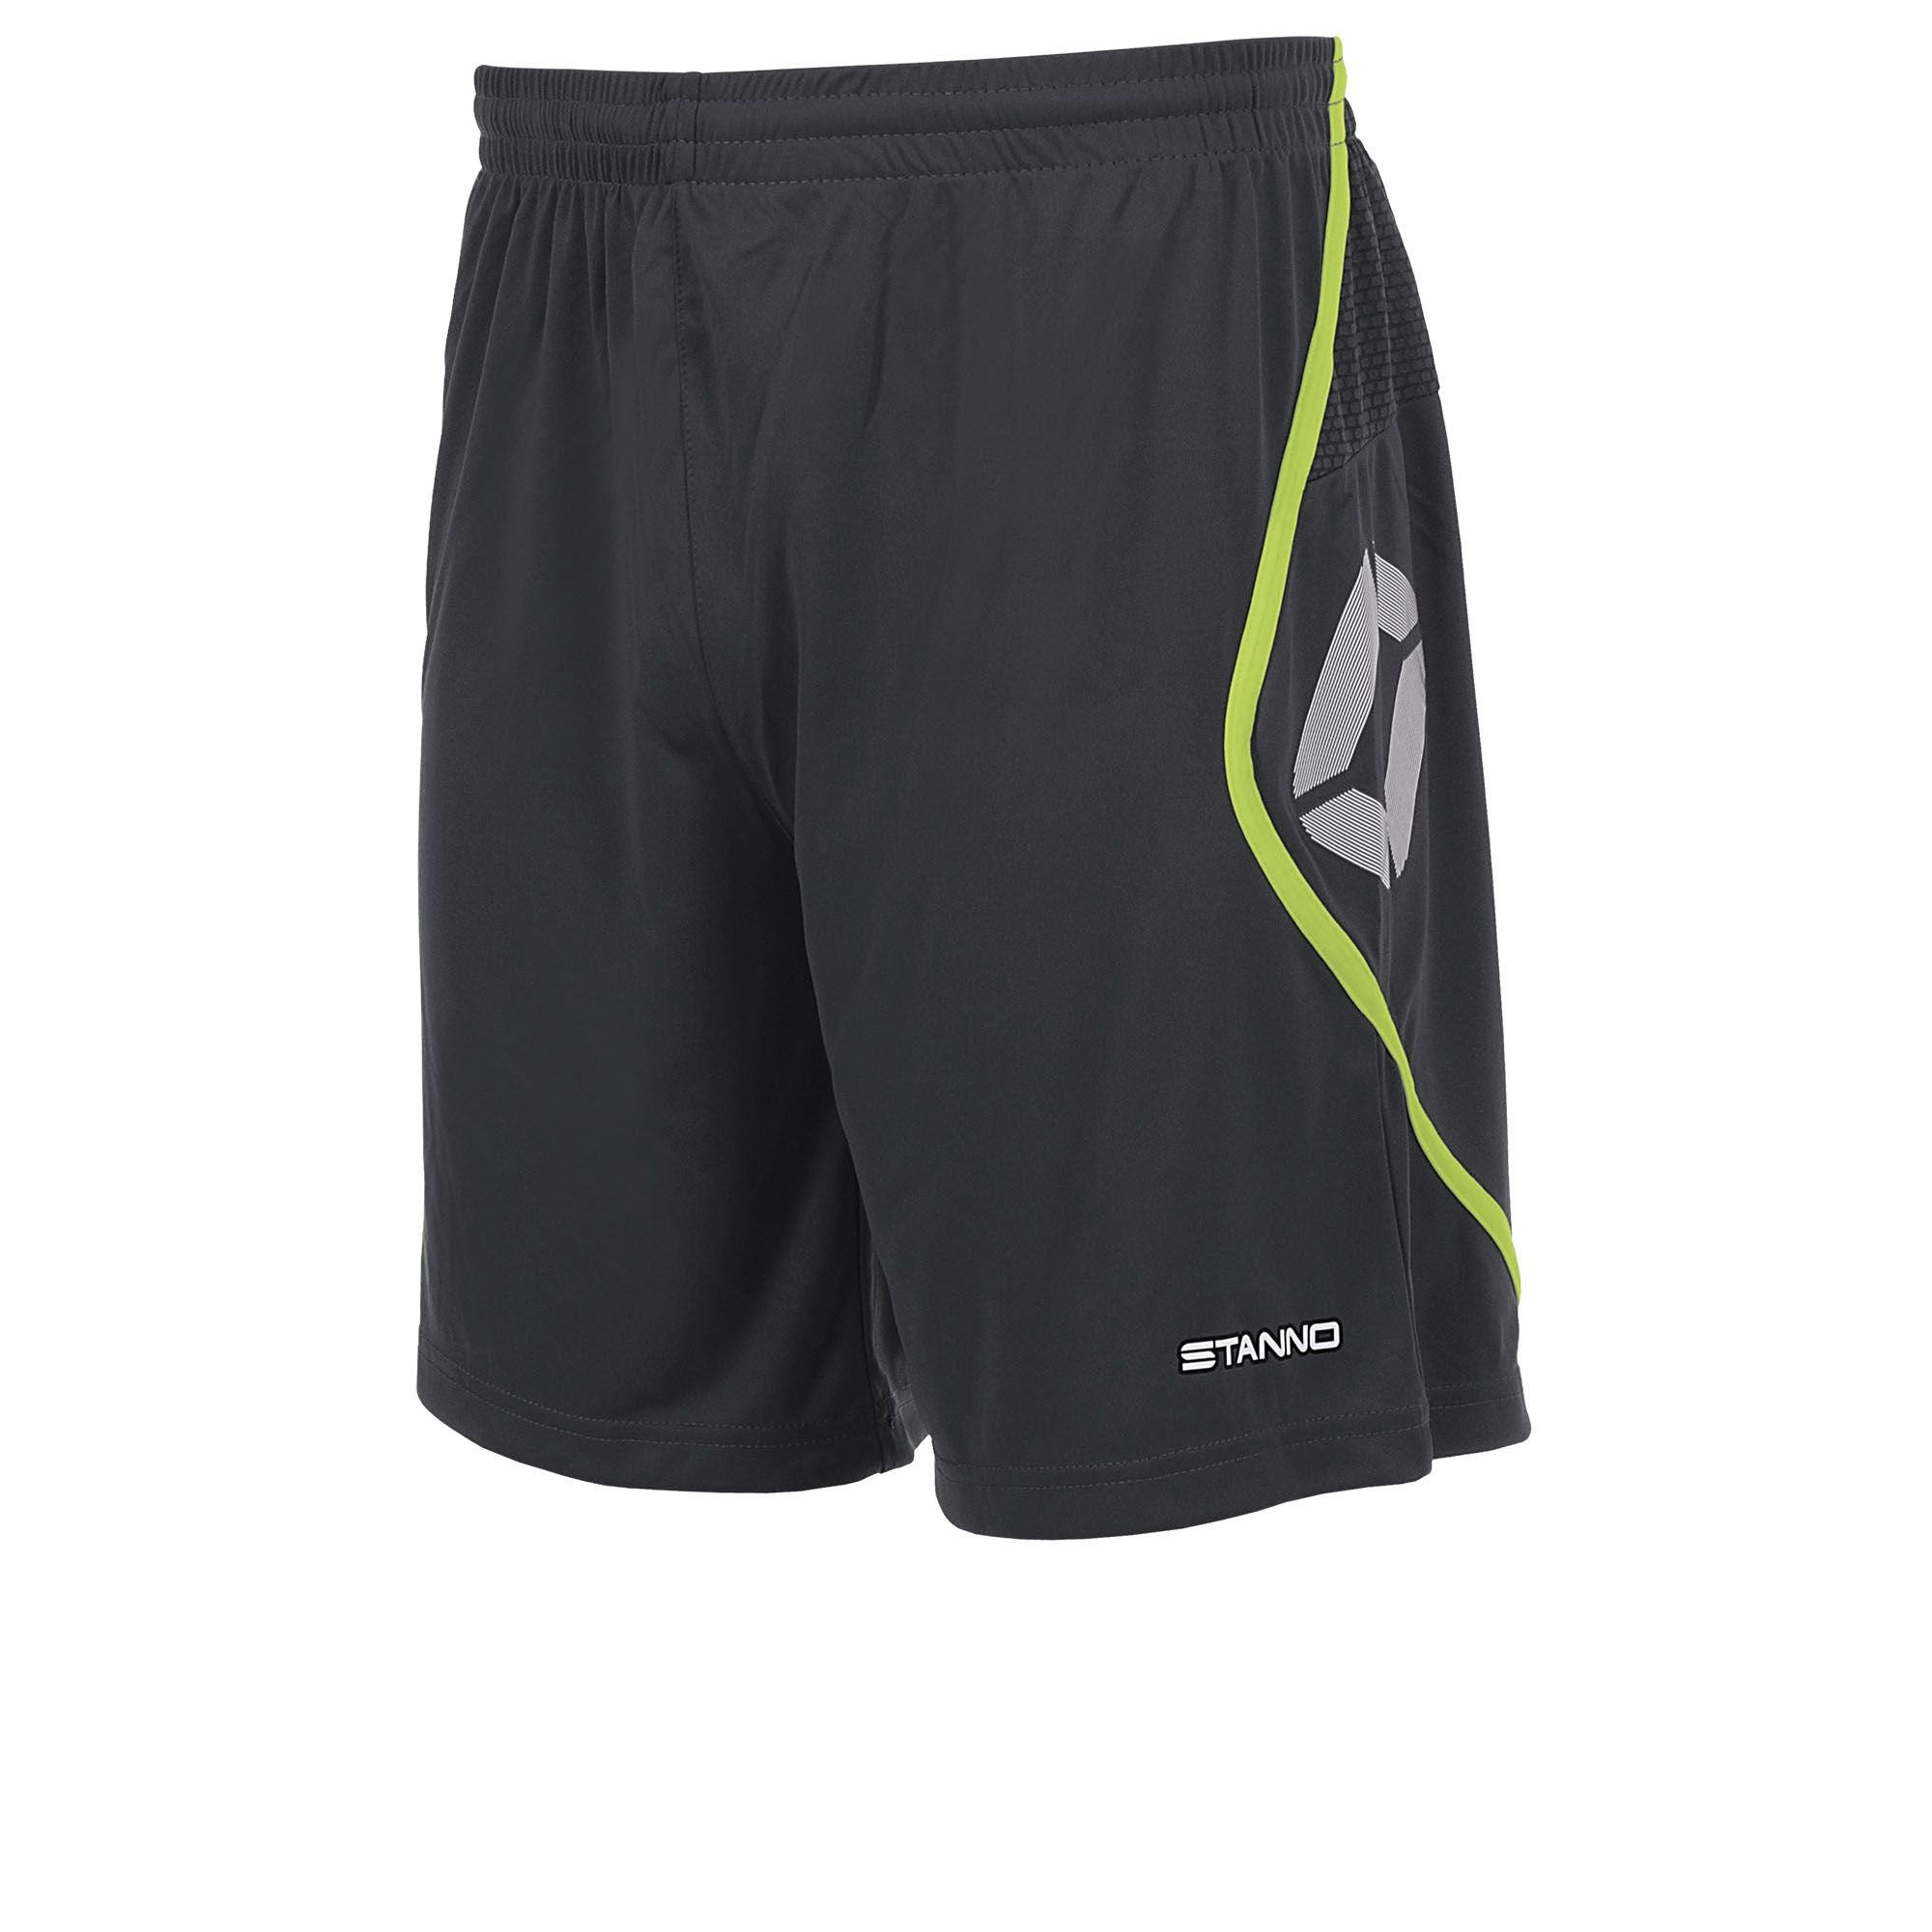 Stanno Pisa Shorts - Anthracite/Neon Yellow